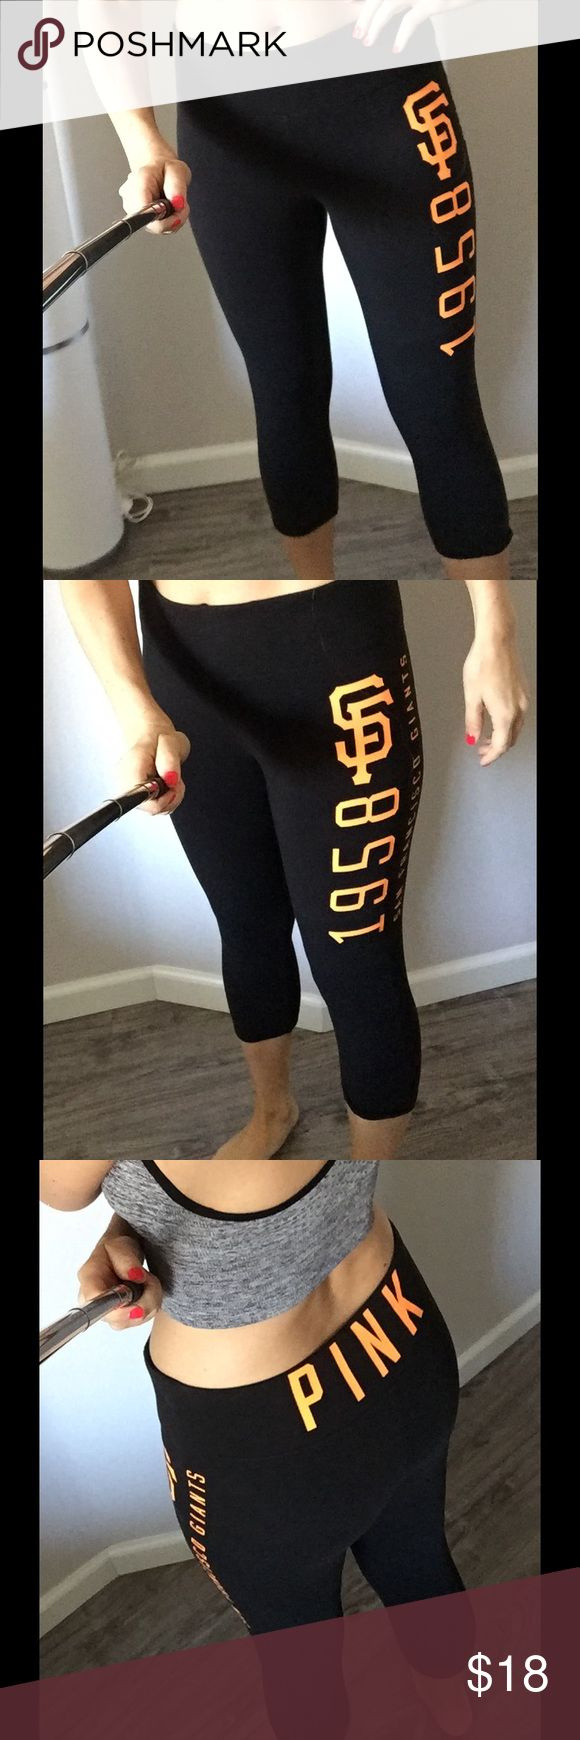 "Victoria's Secret PINK SF Giants capri legging MED Style no longer available! From the exclusive Victoria's Secret pink MLB collection/ with 5th and Ocean.  Black cotton/elastane legging size medium runs true to size.  I love the high rise, thick waistband.  Flourescent orange SF 1875 San Francisco Giants printed on left thigh, and PINK on back waistband.  Medium- About 27"" long - perfect condition, no cracks in print.  Retailed for $50 - purchased at SF store. Pants"